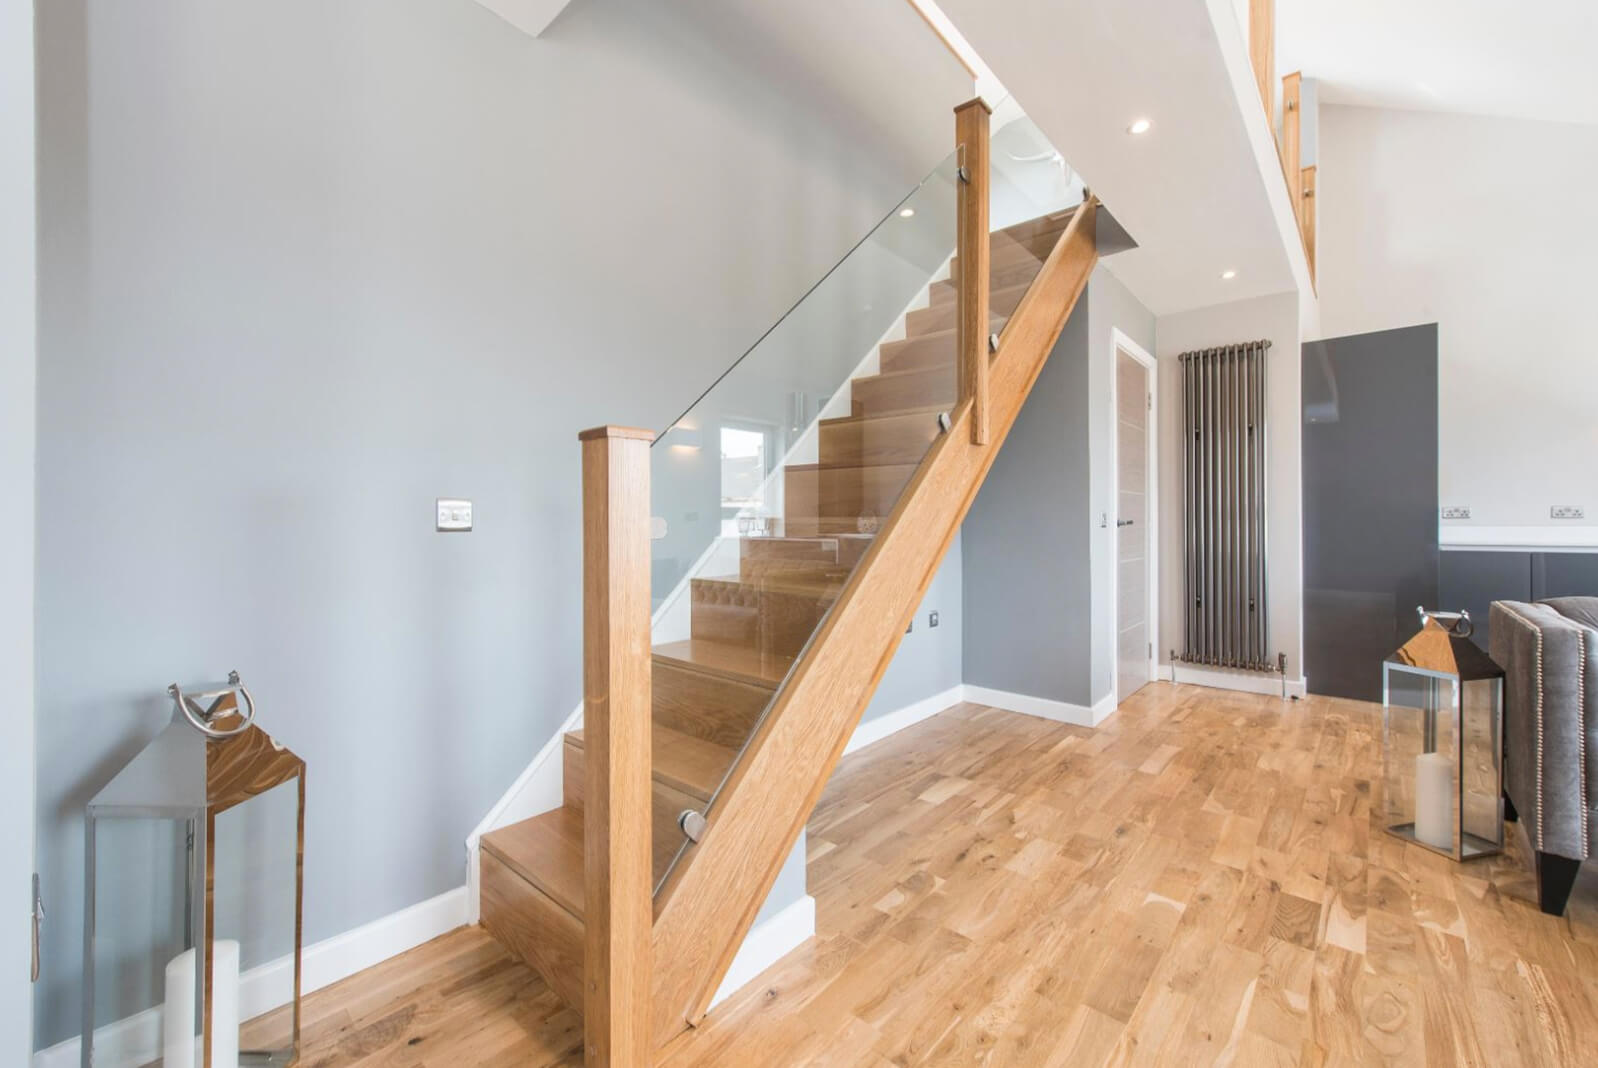 Modern, wooden staircase with glass panels leading up to mezzanine area.